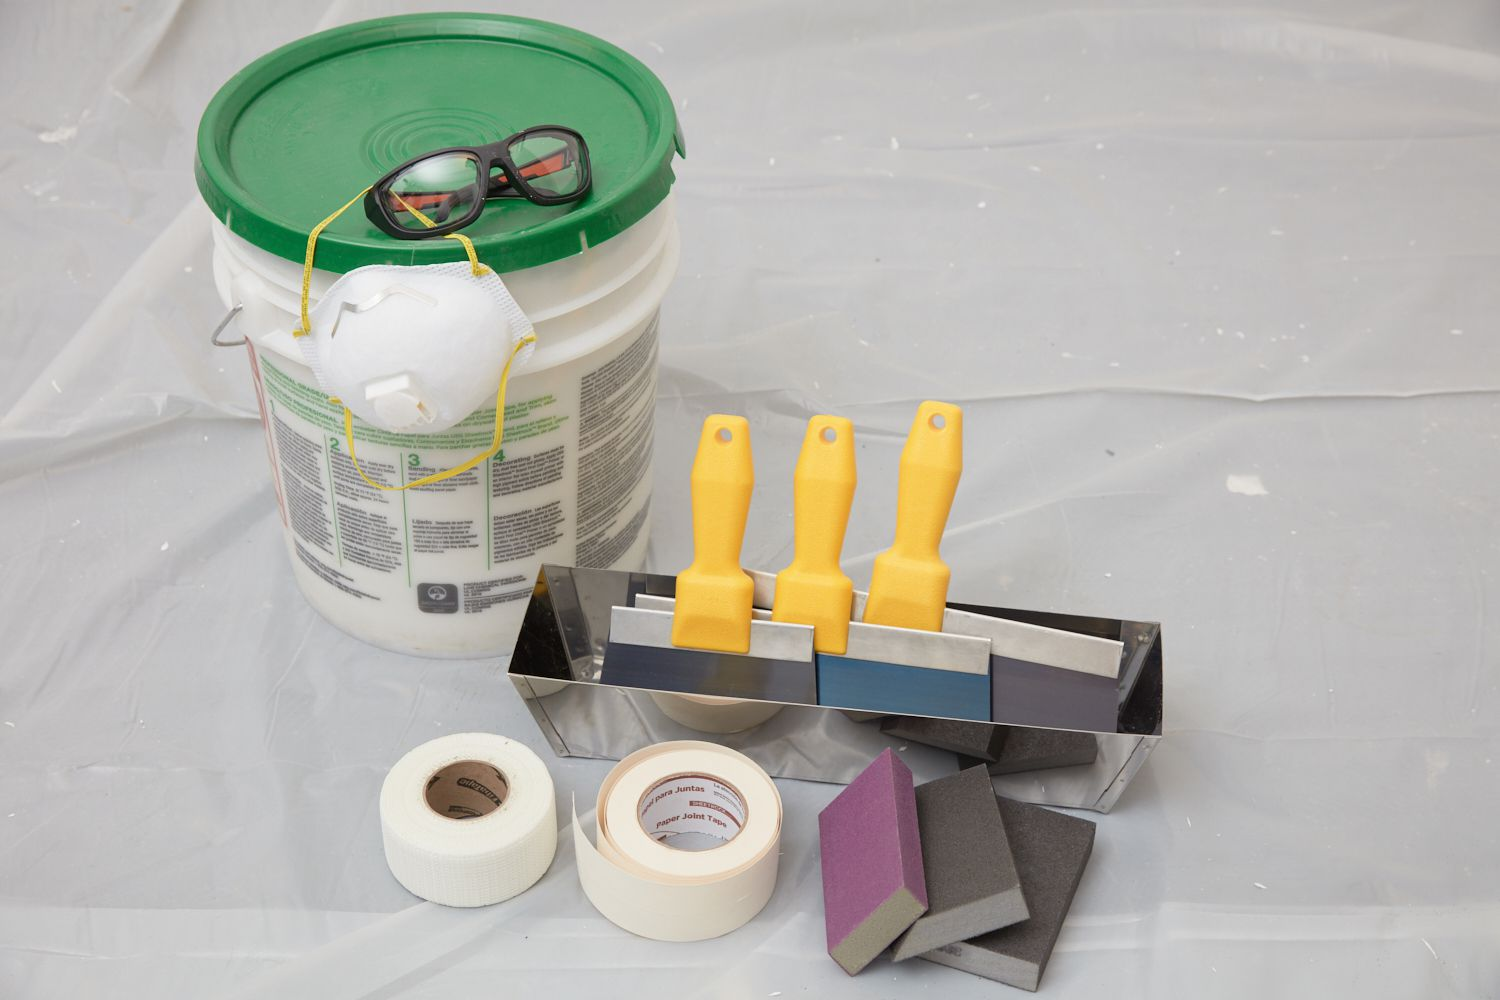 tools to finish drywall